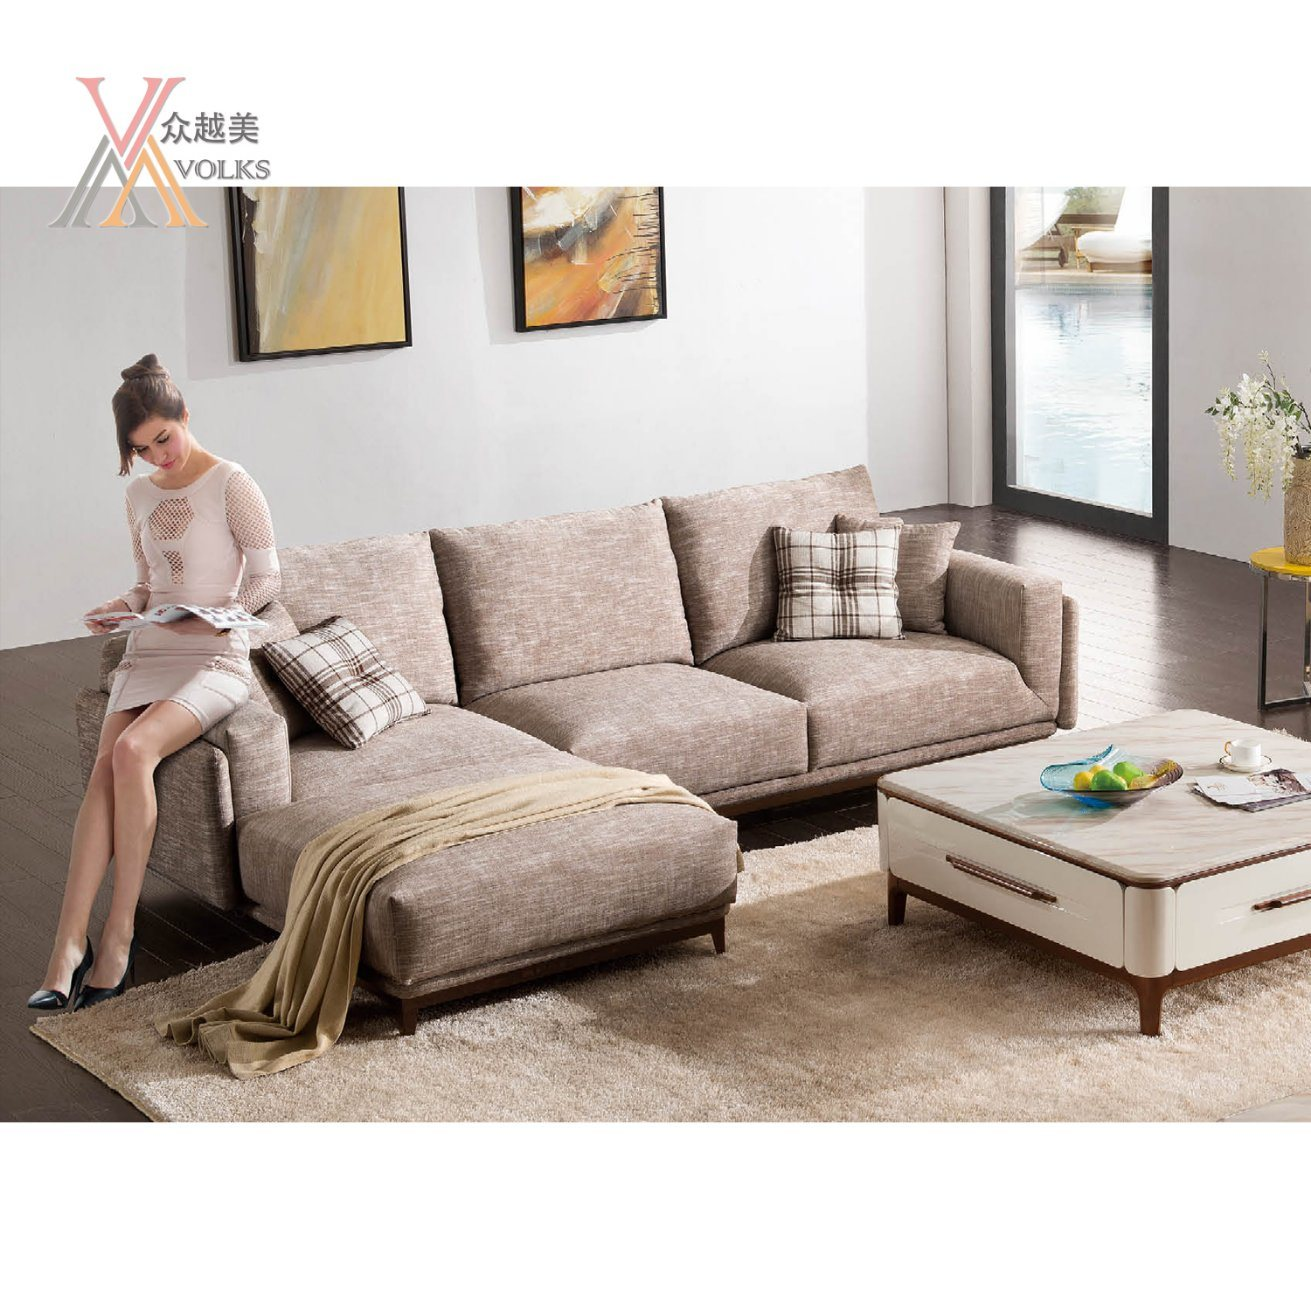 Checked Sofa China Comfortable Fabric Sofa Set With